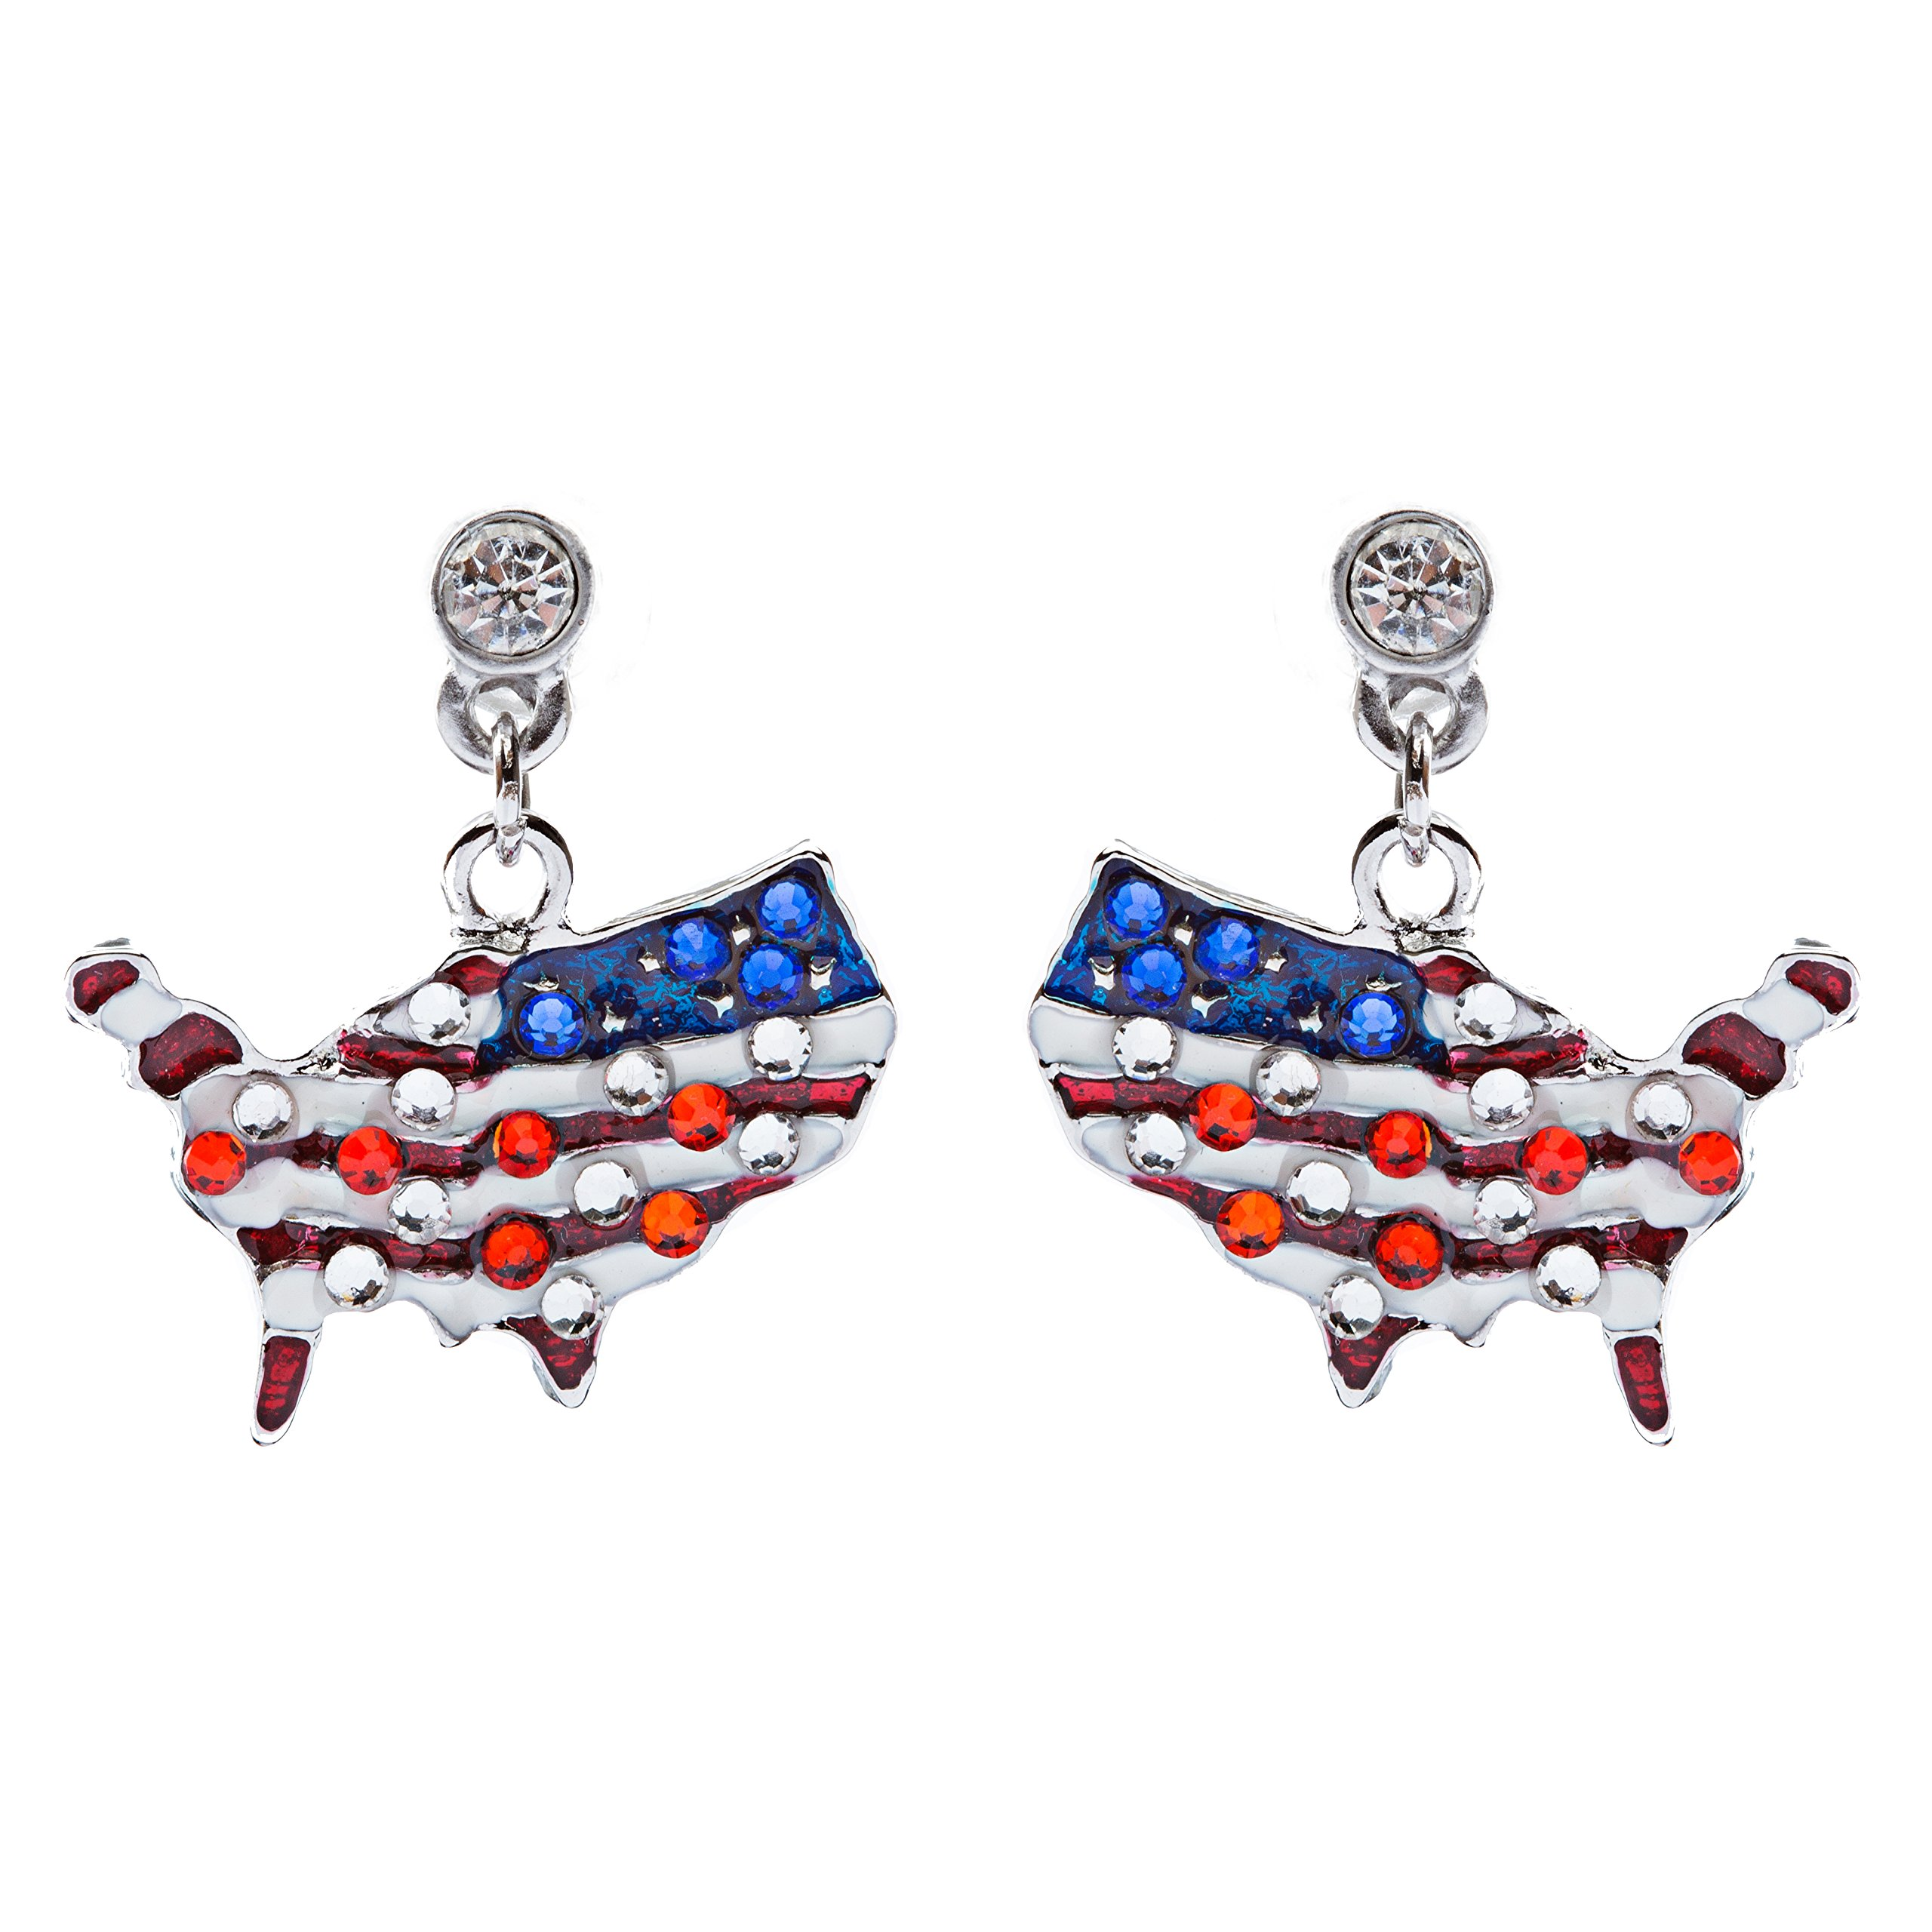 ACCESSORIESFOREVER Patriotic Jewelry Crystal Rhinestone American Flag Dangle Earrings E762 Silver